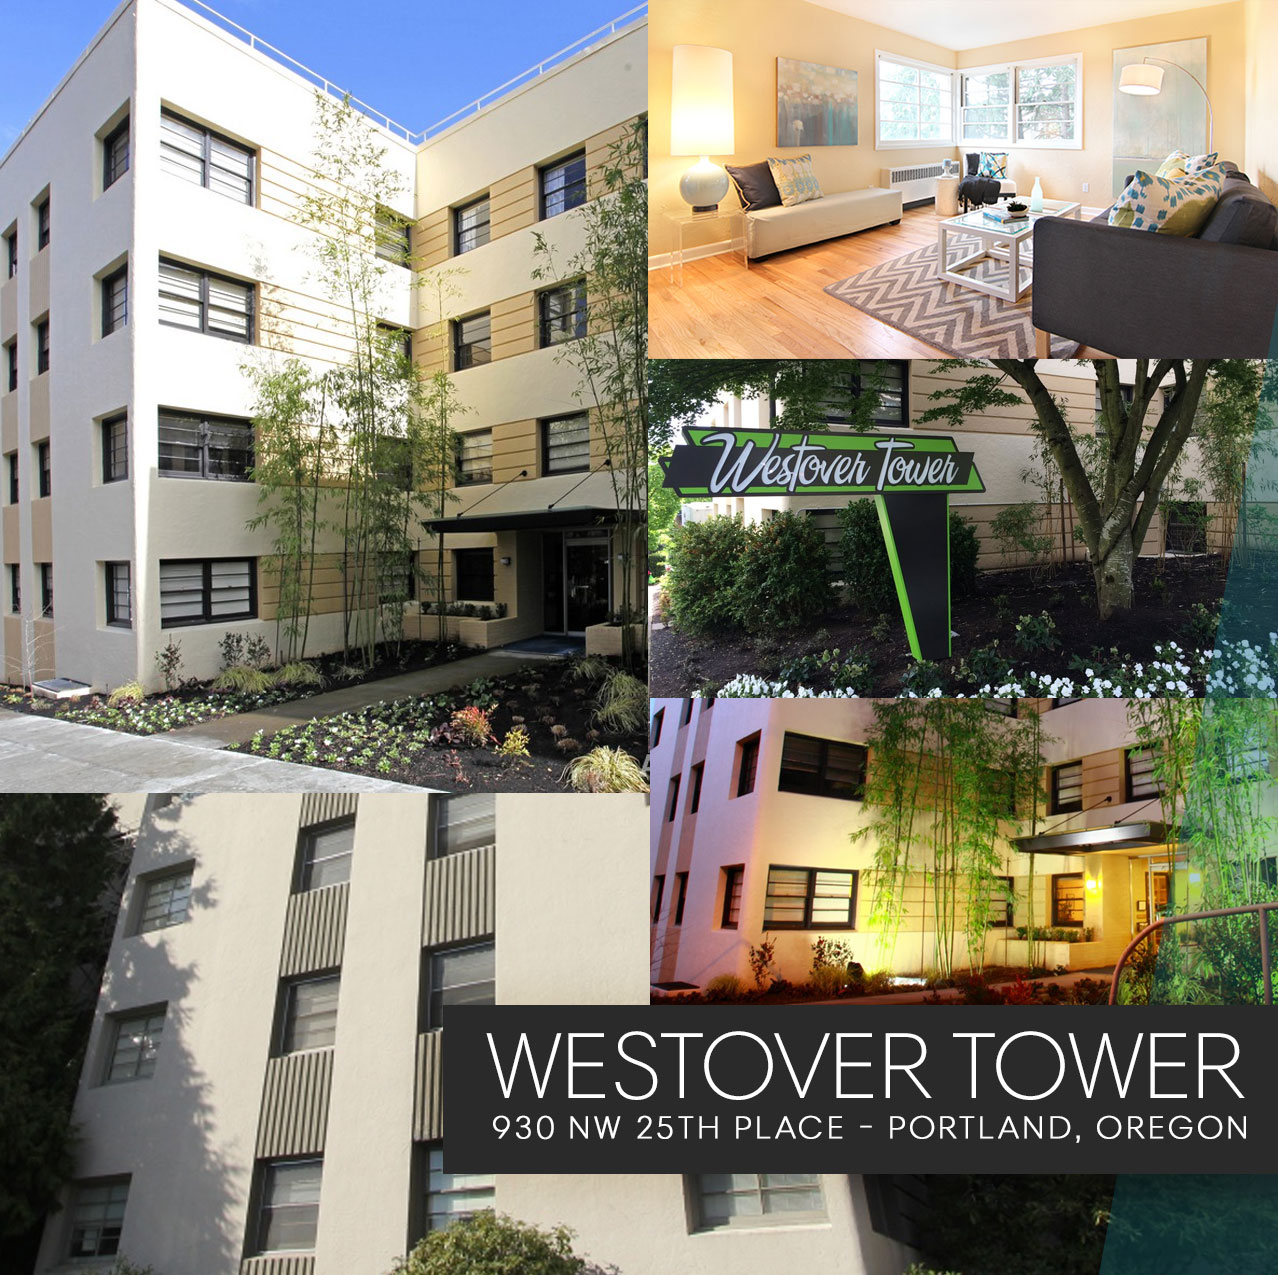 Westover Tower